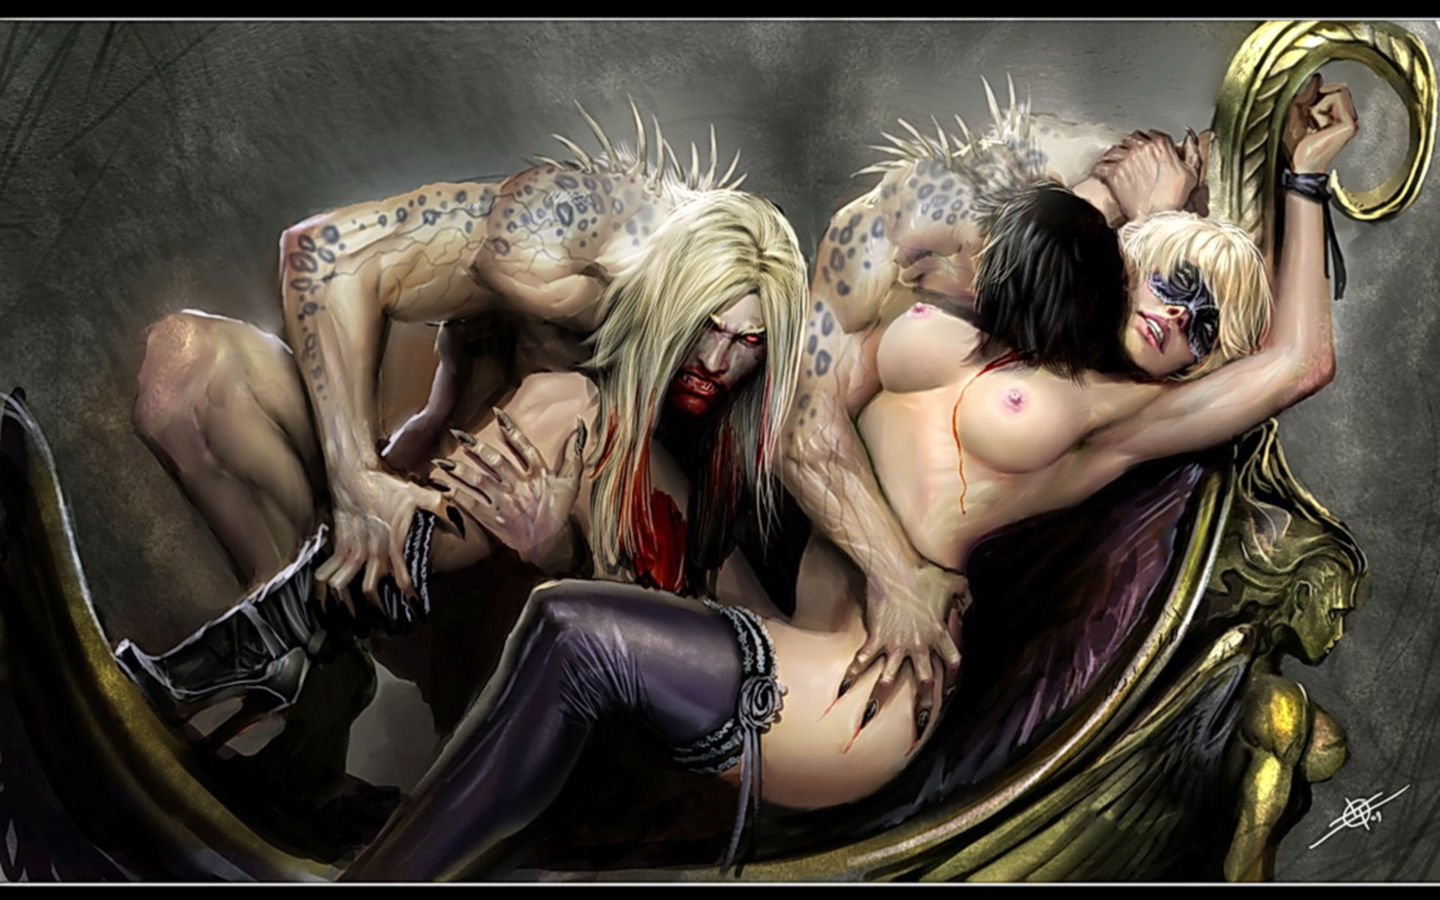 Erotic vampire death naked pictures